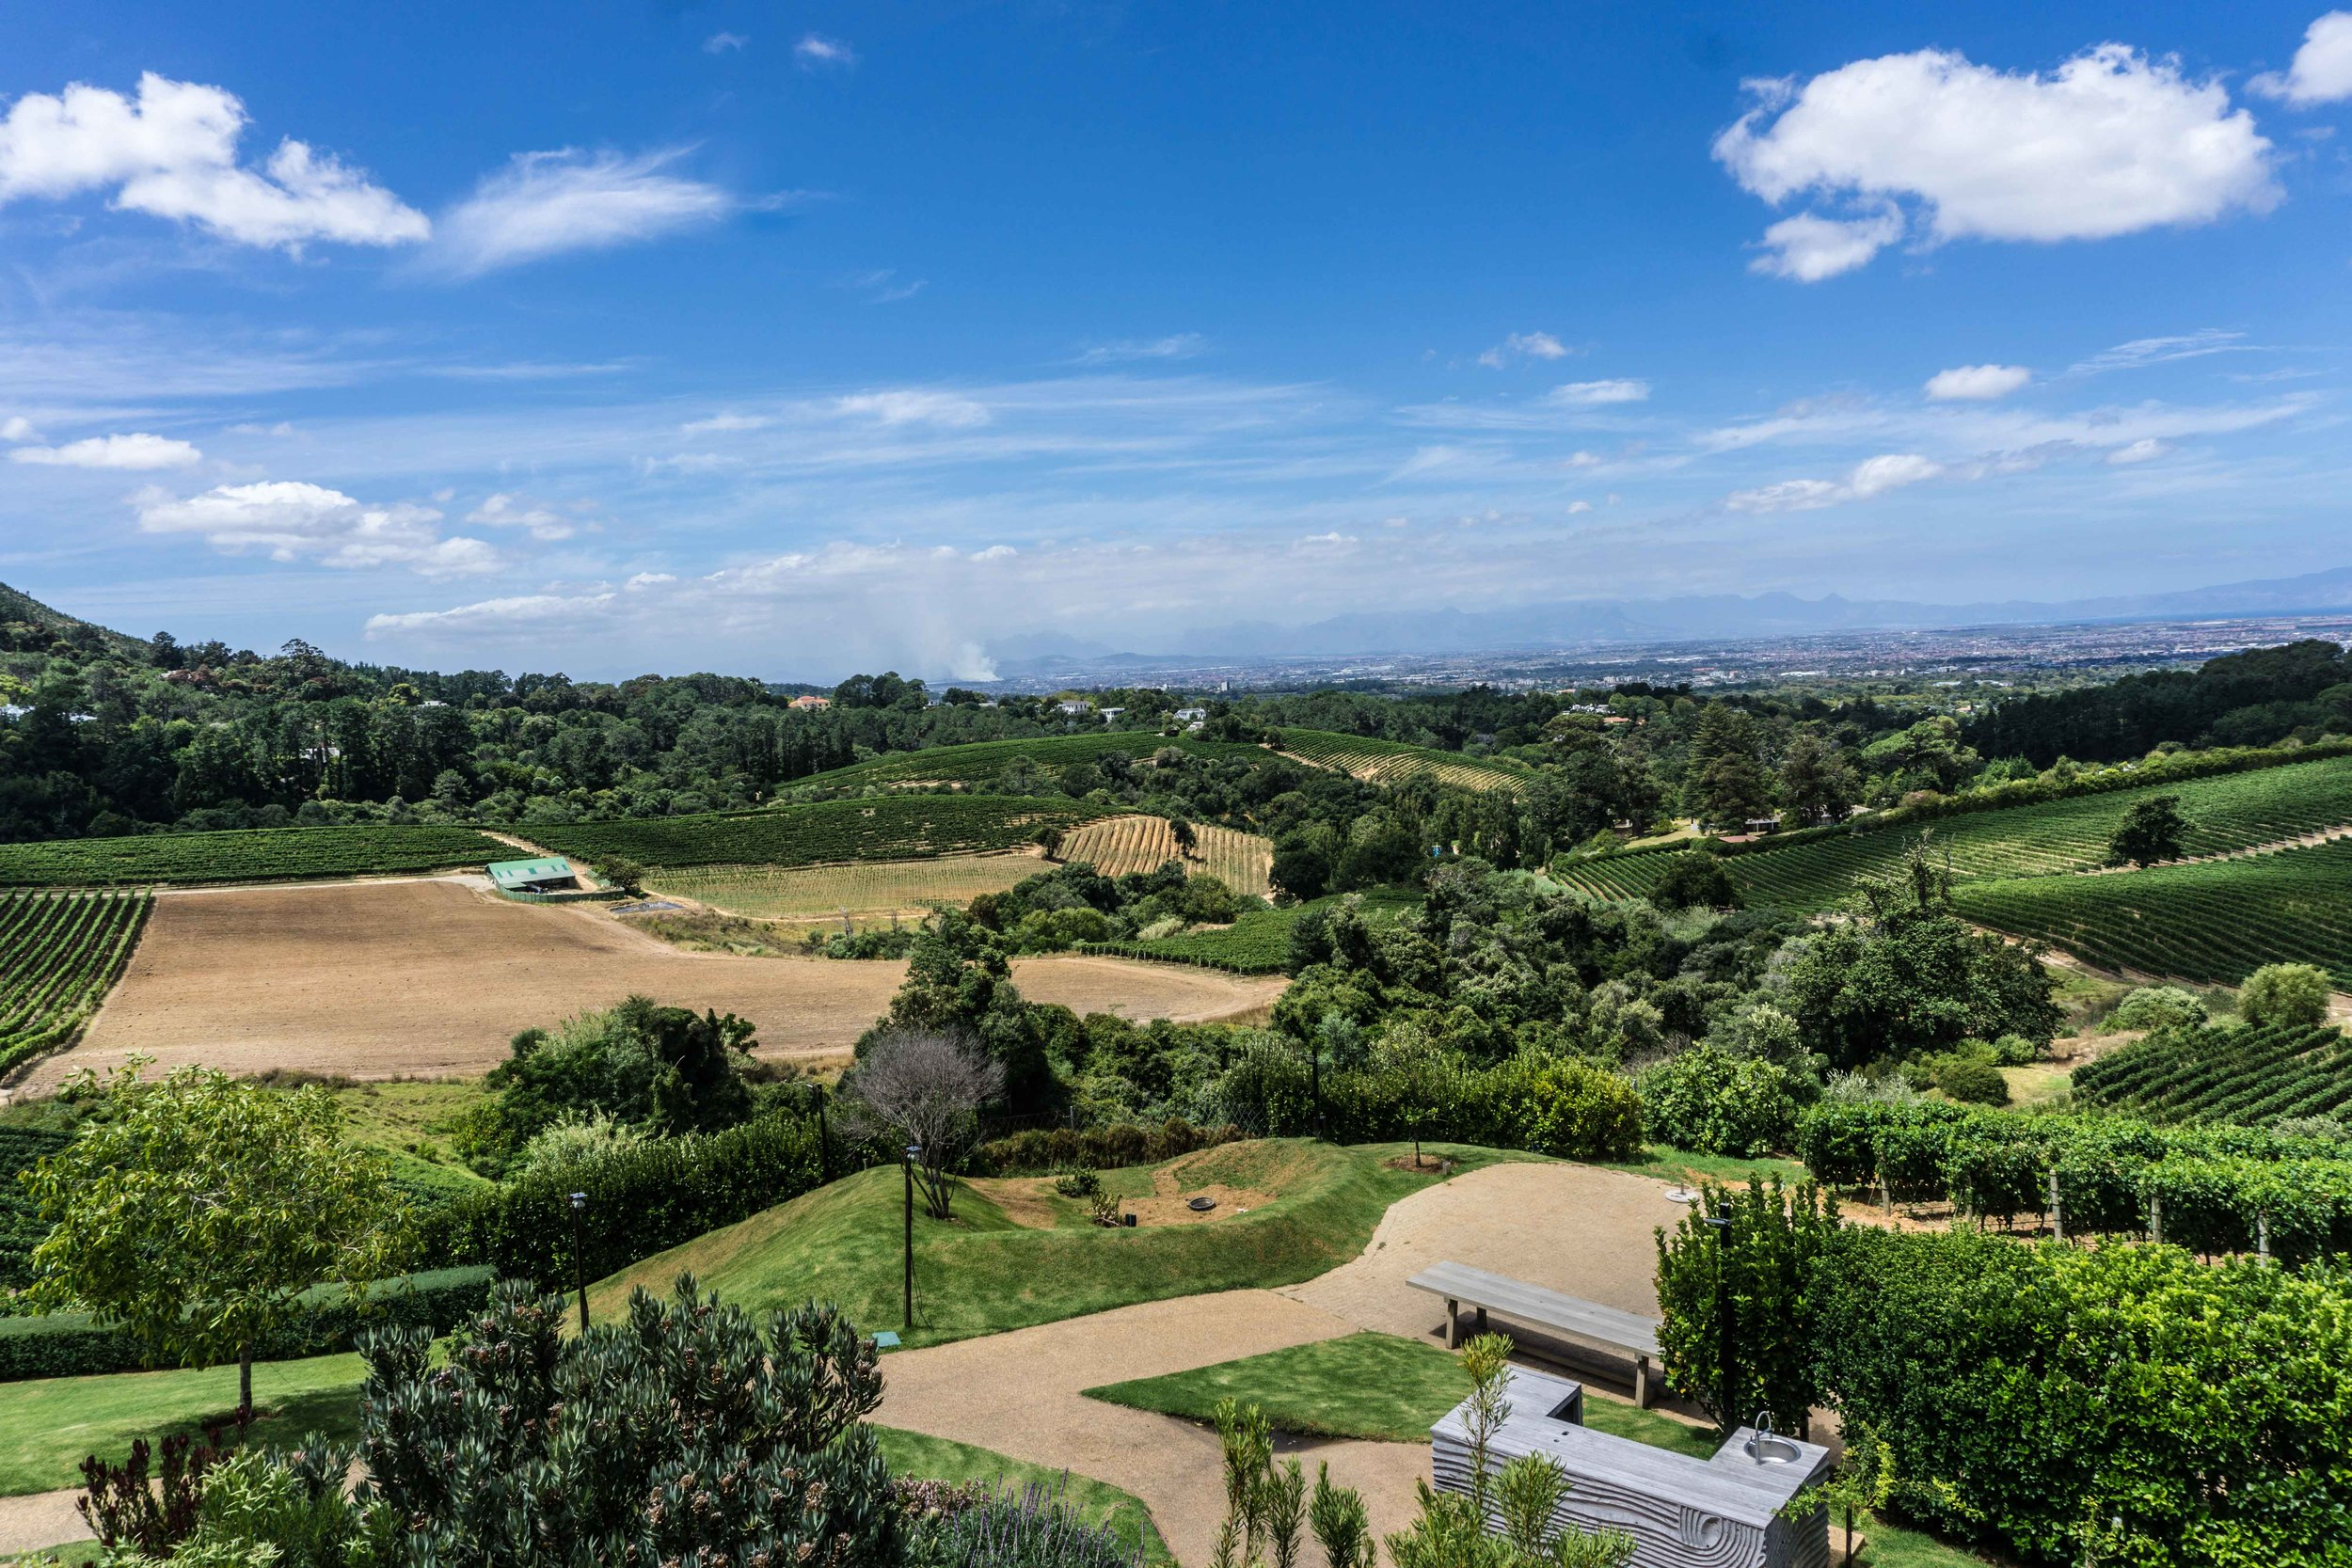 View from Constantia